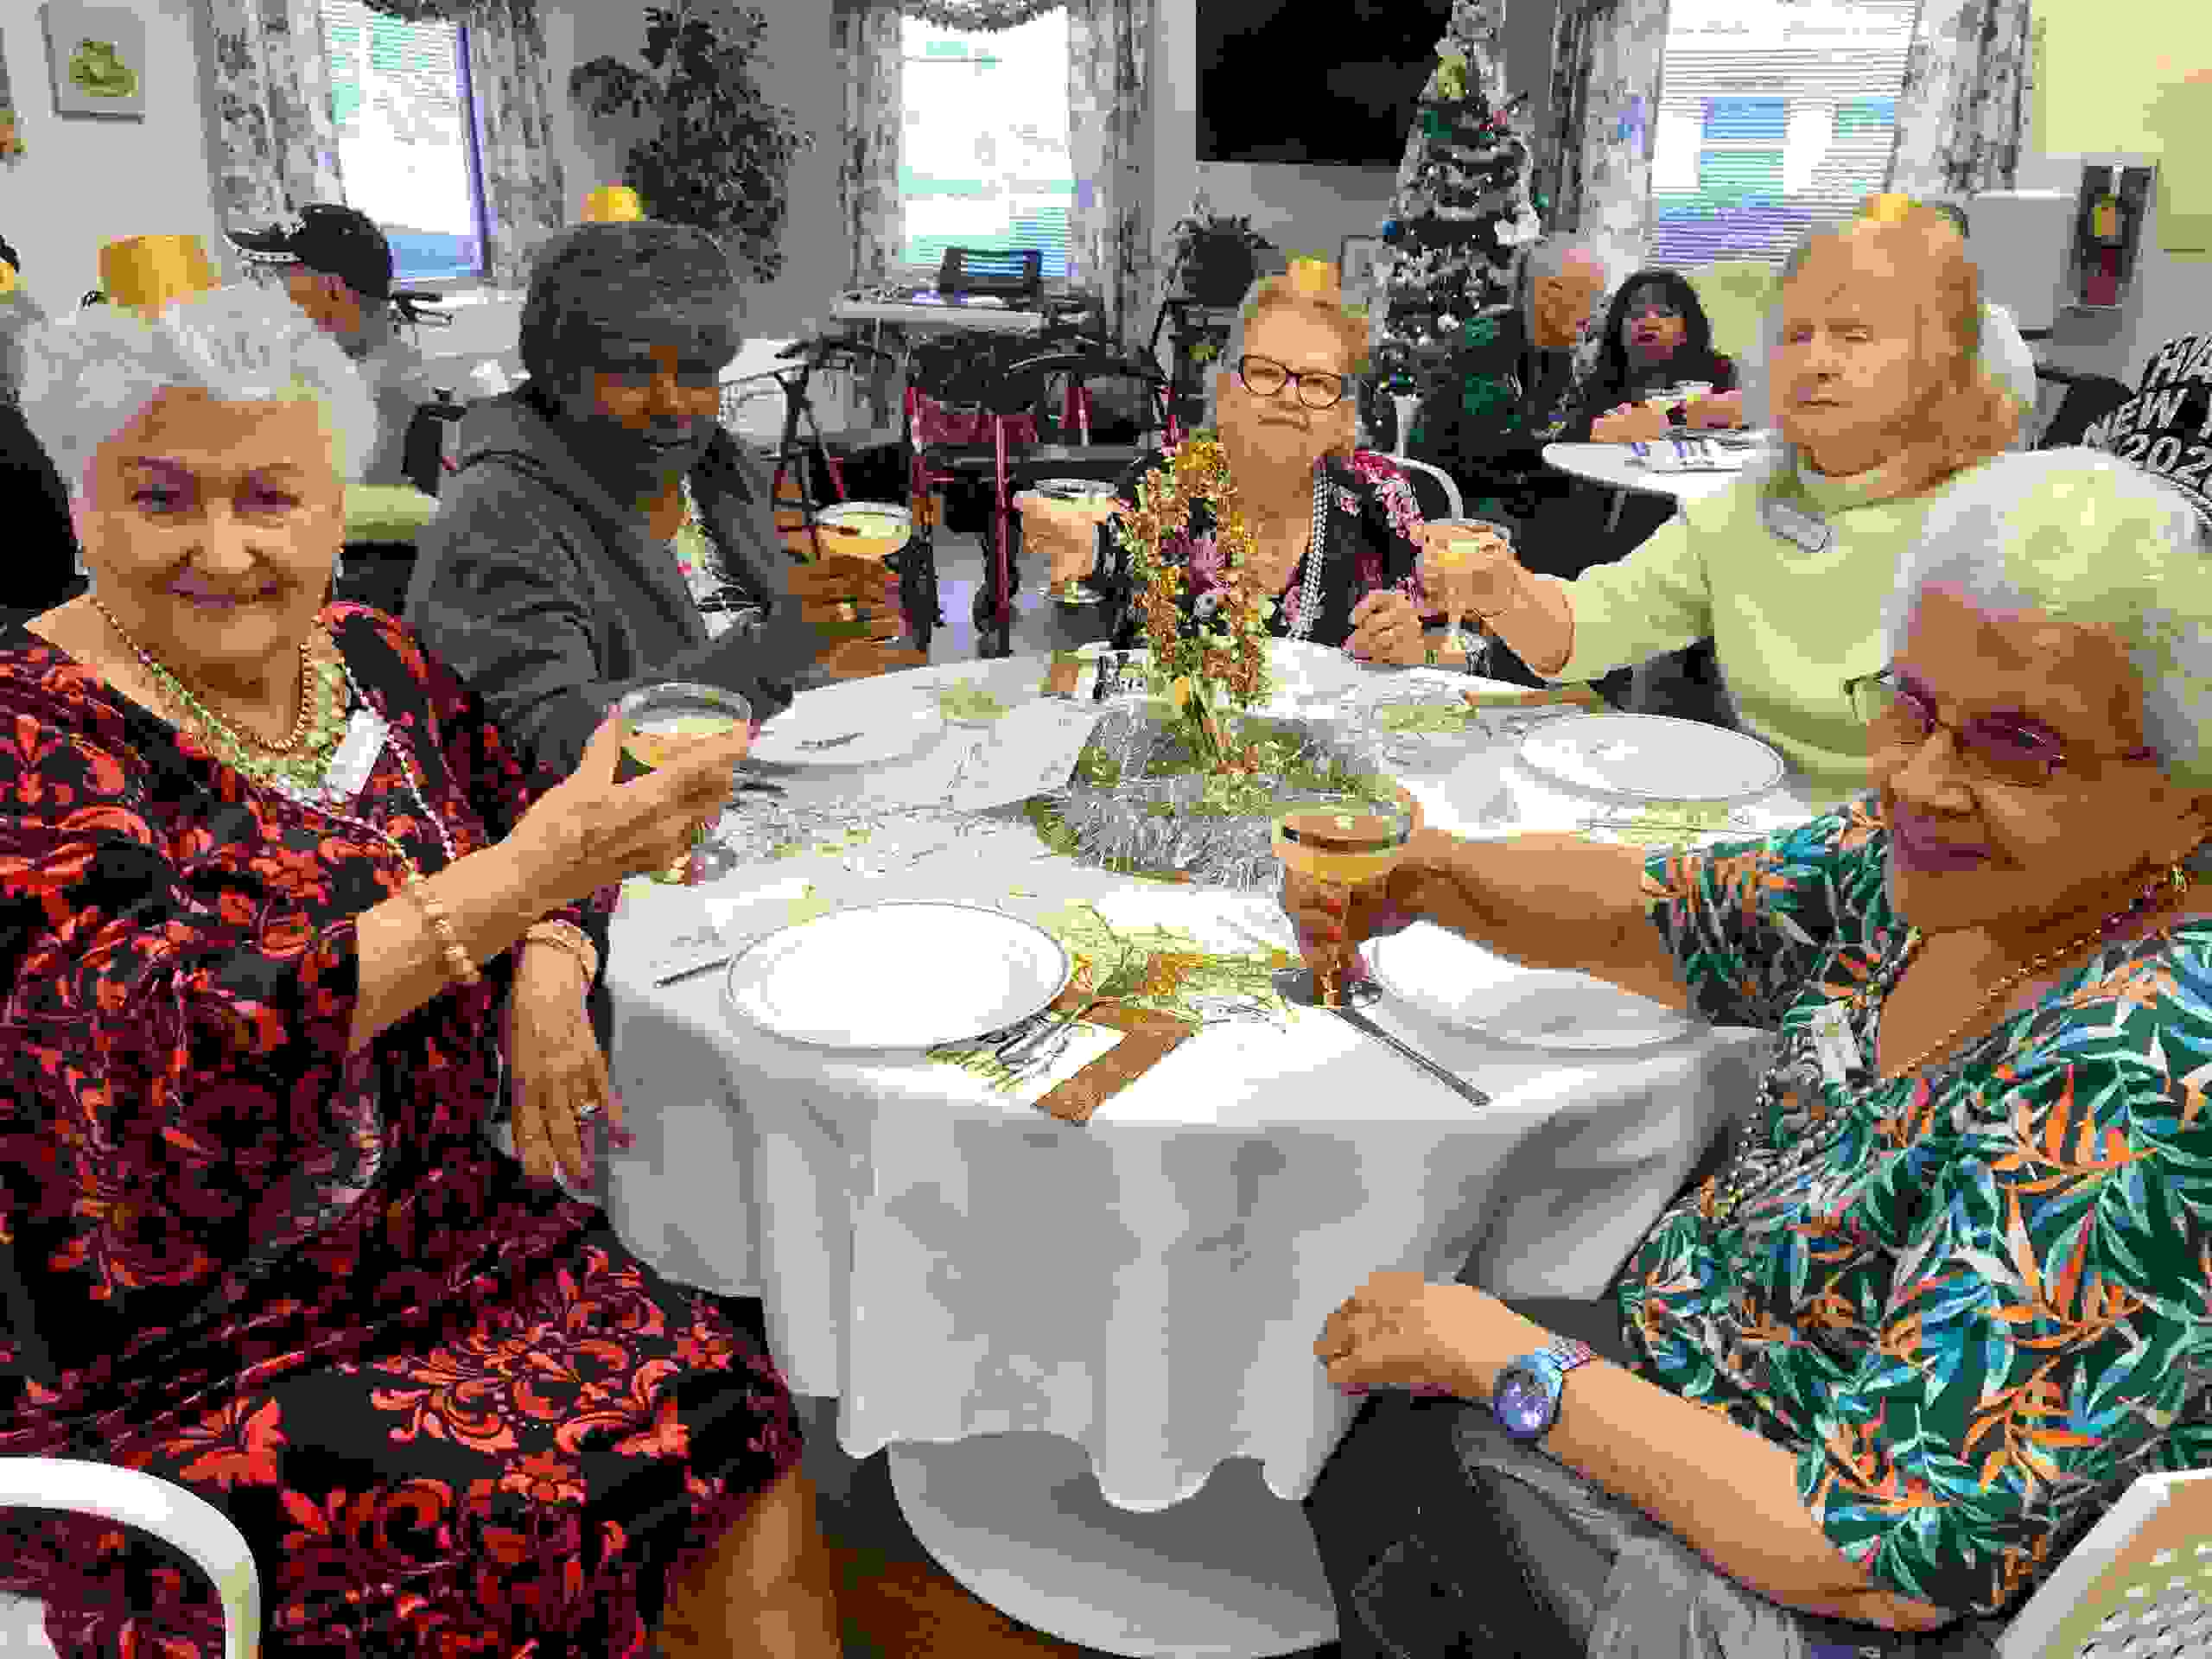 Members of Sea Breeze Adult Day center